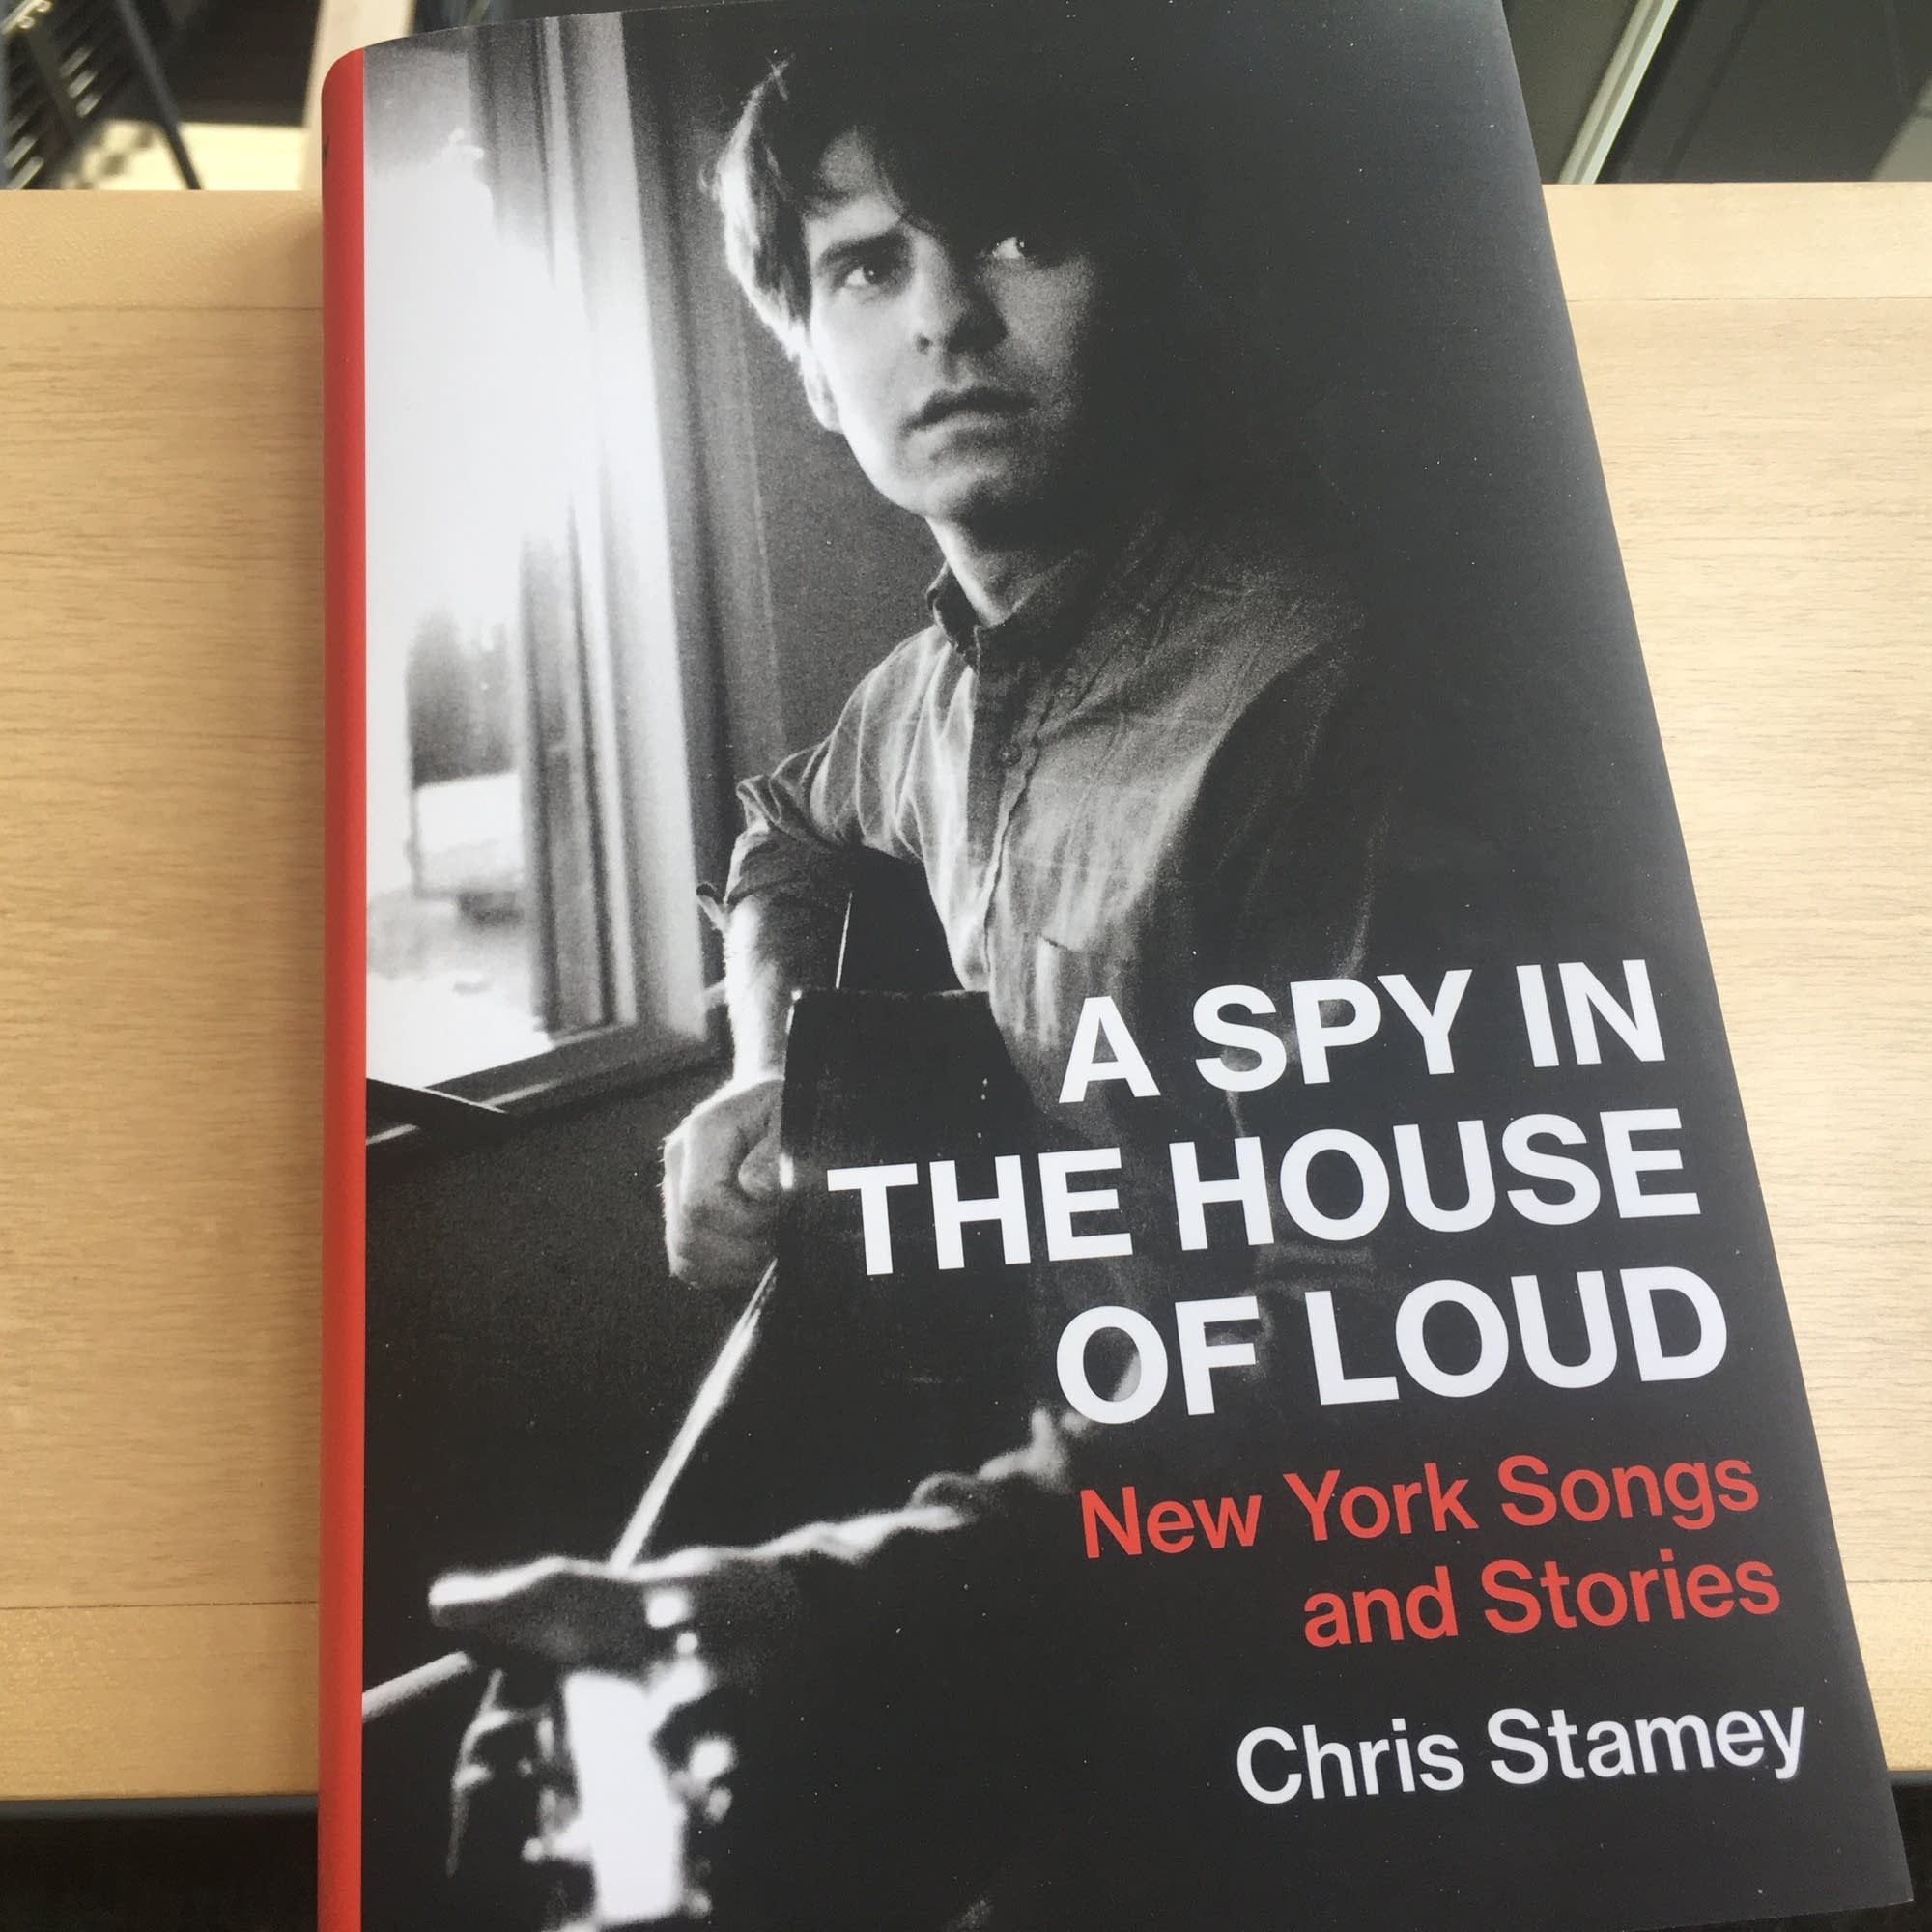 Chris Stamey's book 'A Spy in the House of Loud.'